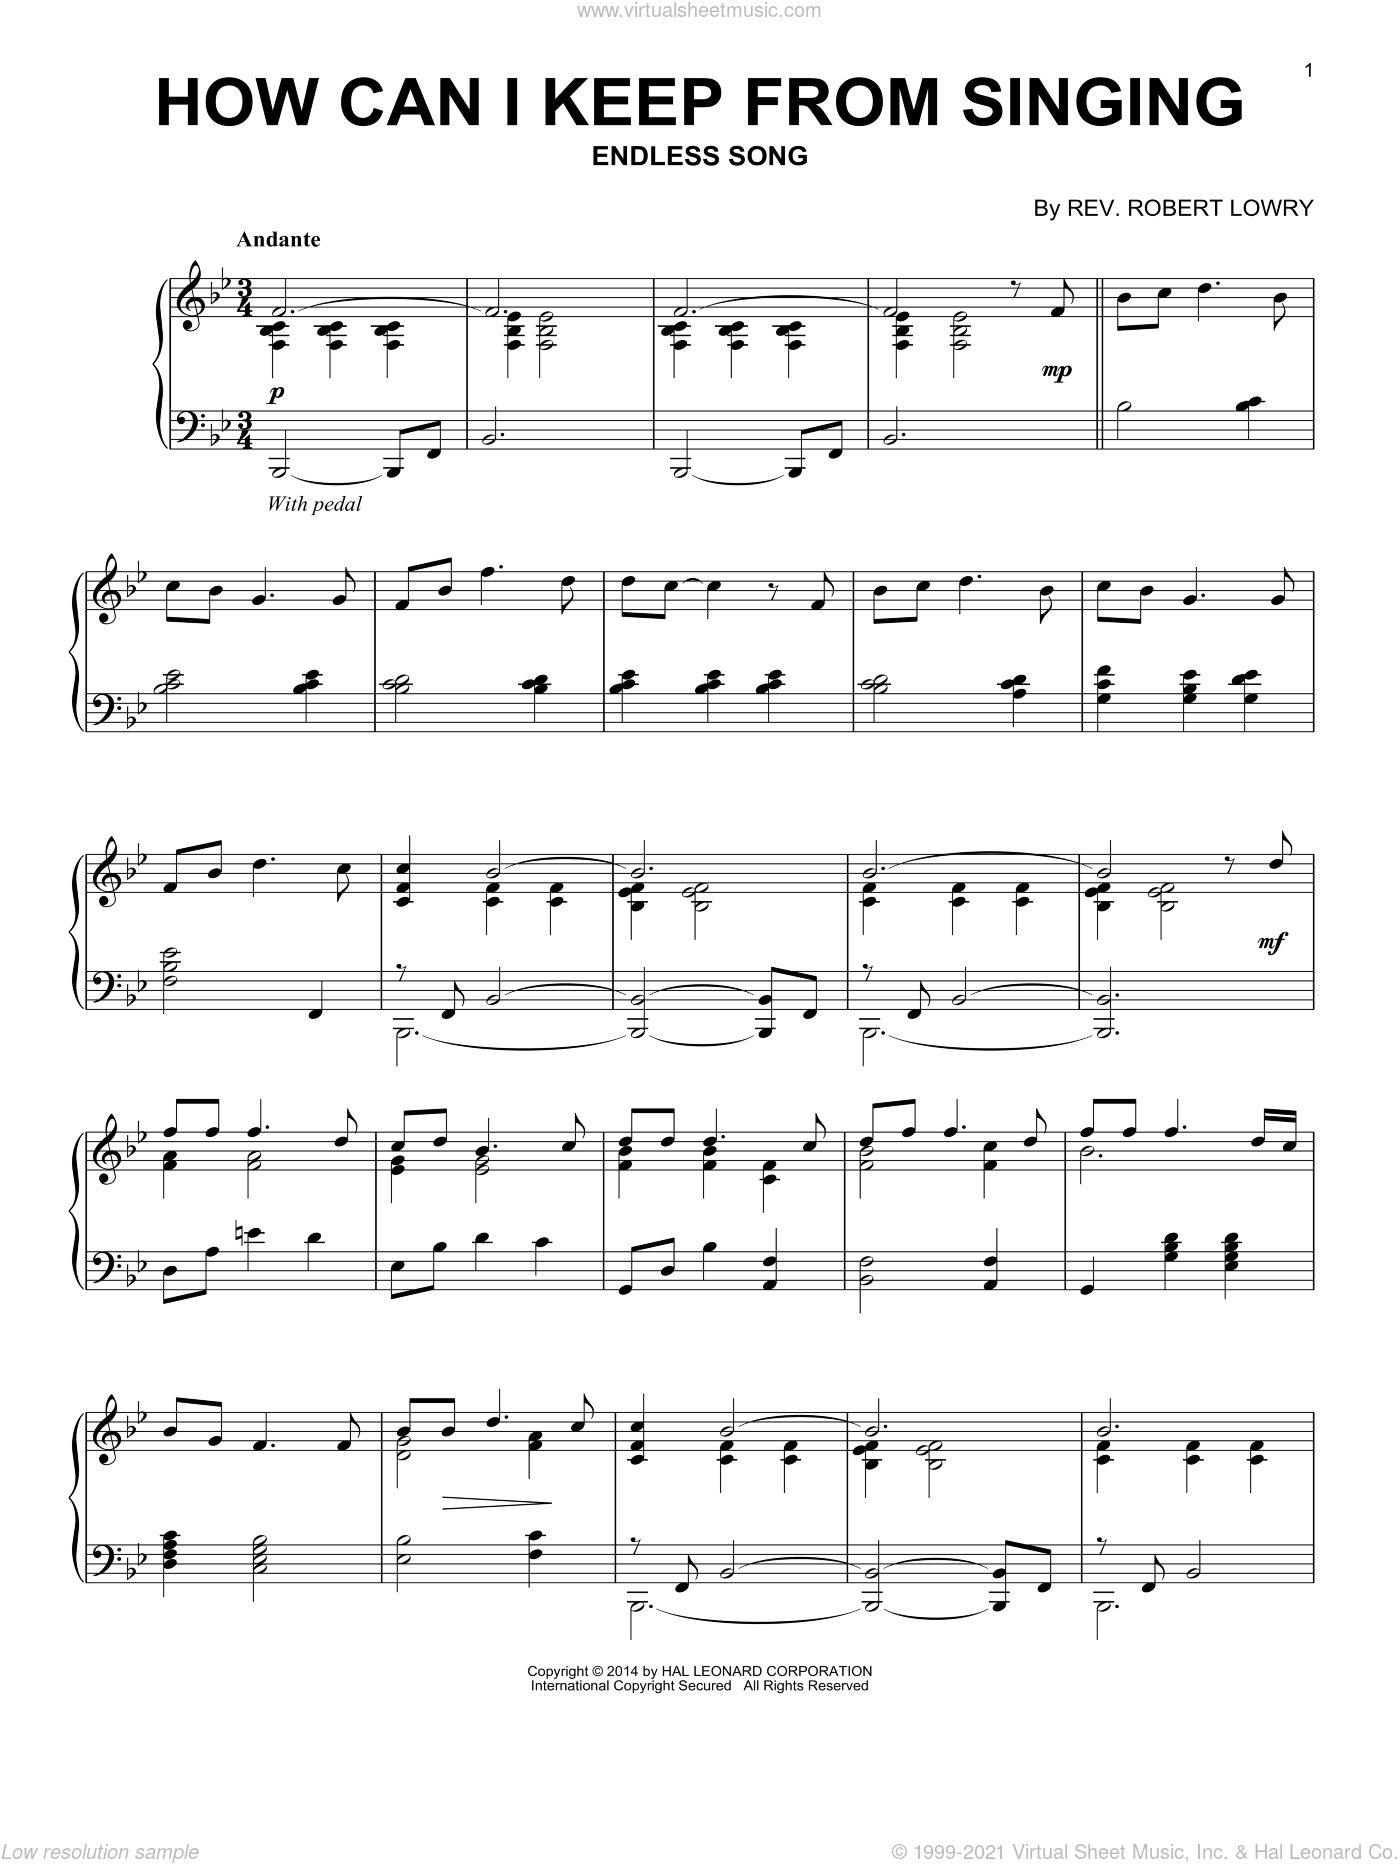 How Can I Keep From Singing sheet music for piano solo by Robert Lowry, intermediate